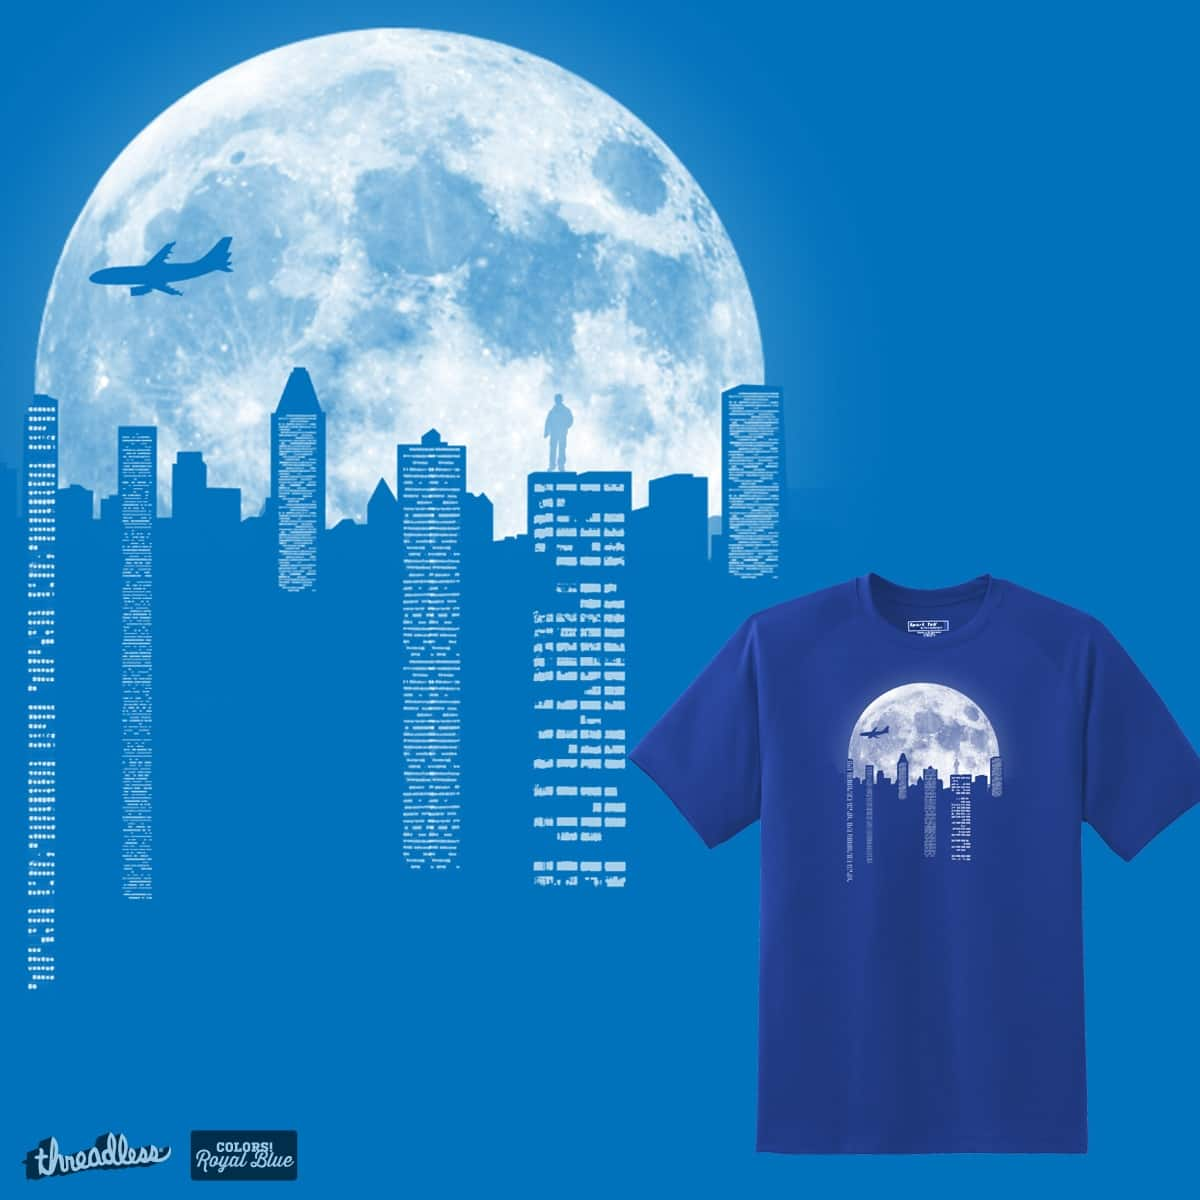 moon scape by pourhippie on Threadless